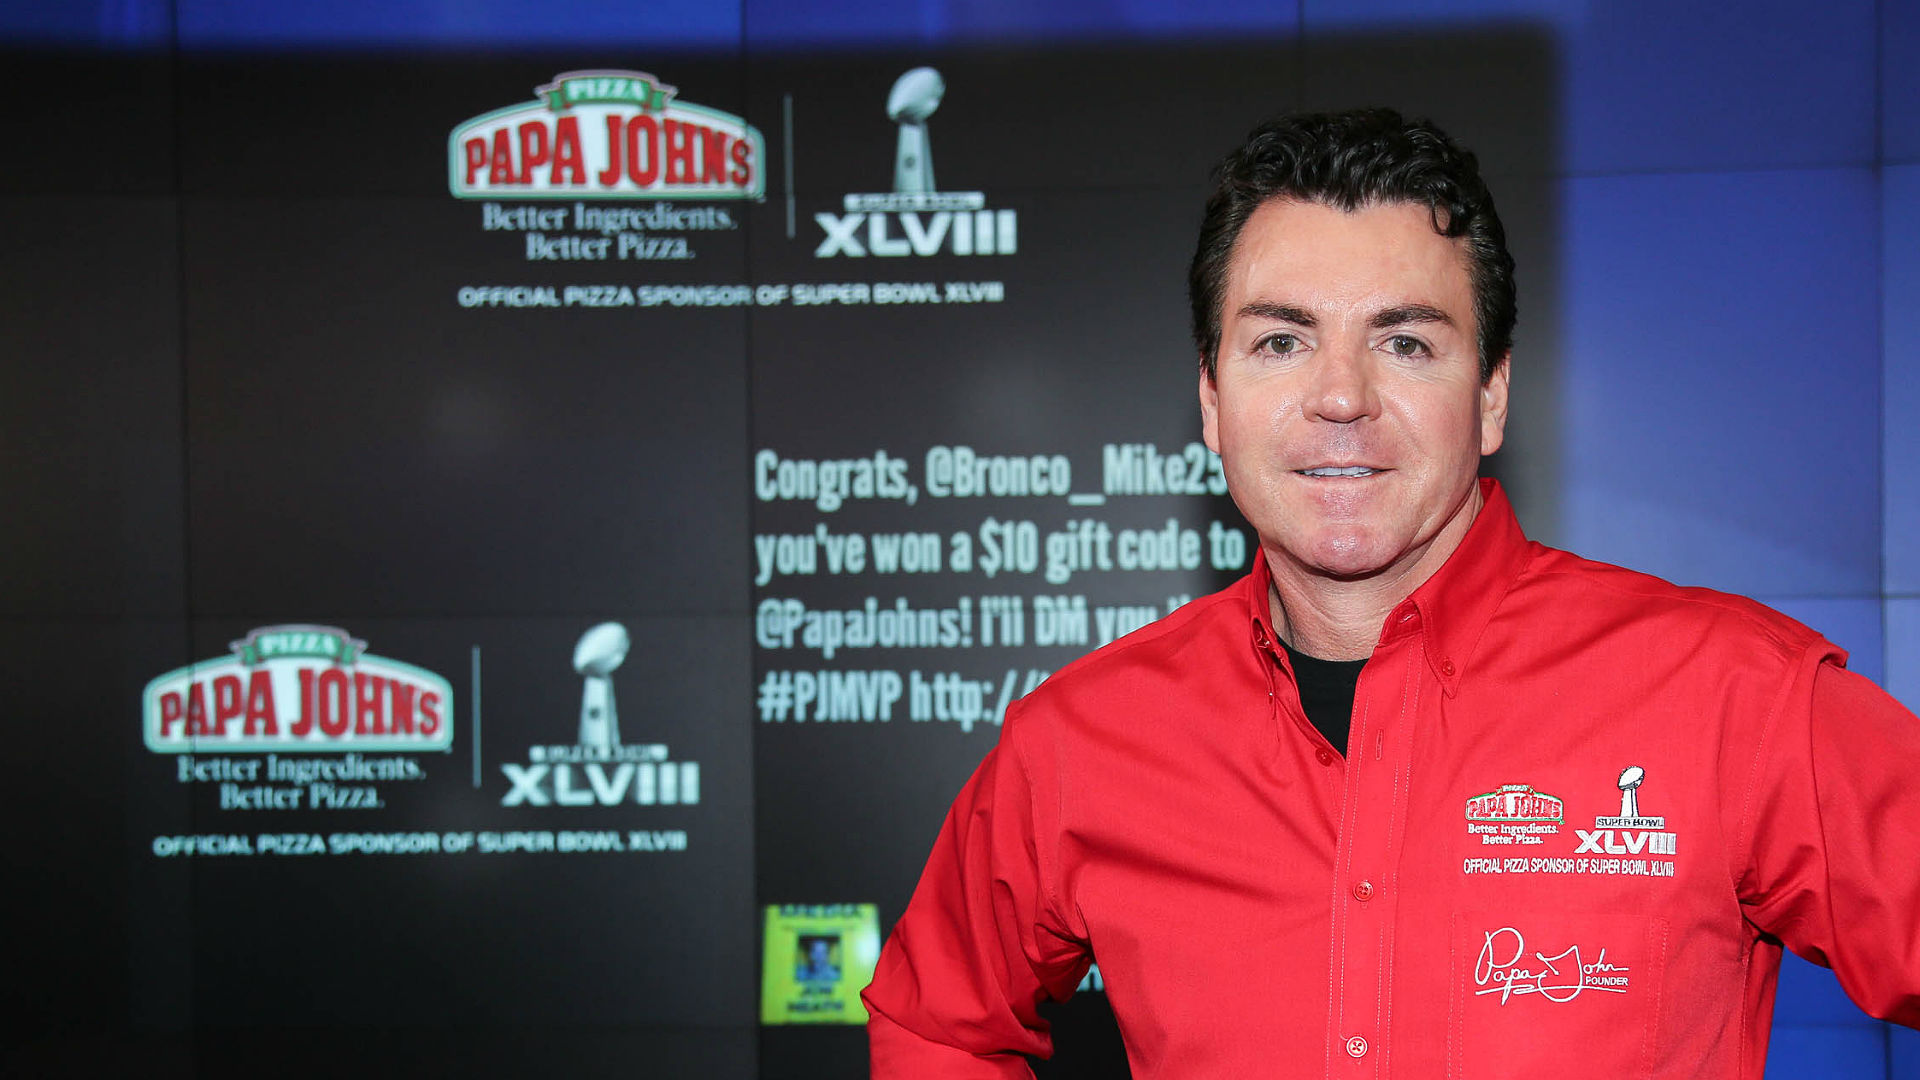 Papa John's apologizes for comments made about National Football League  players